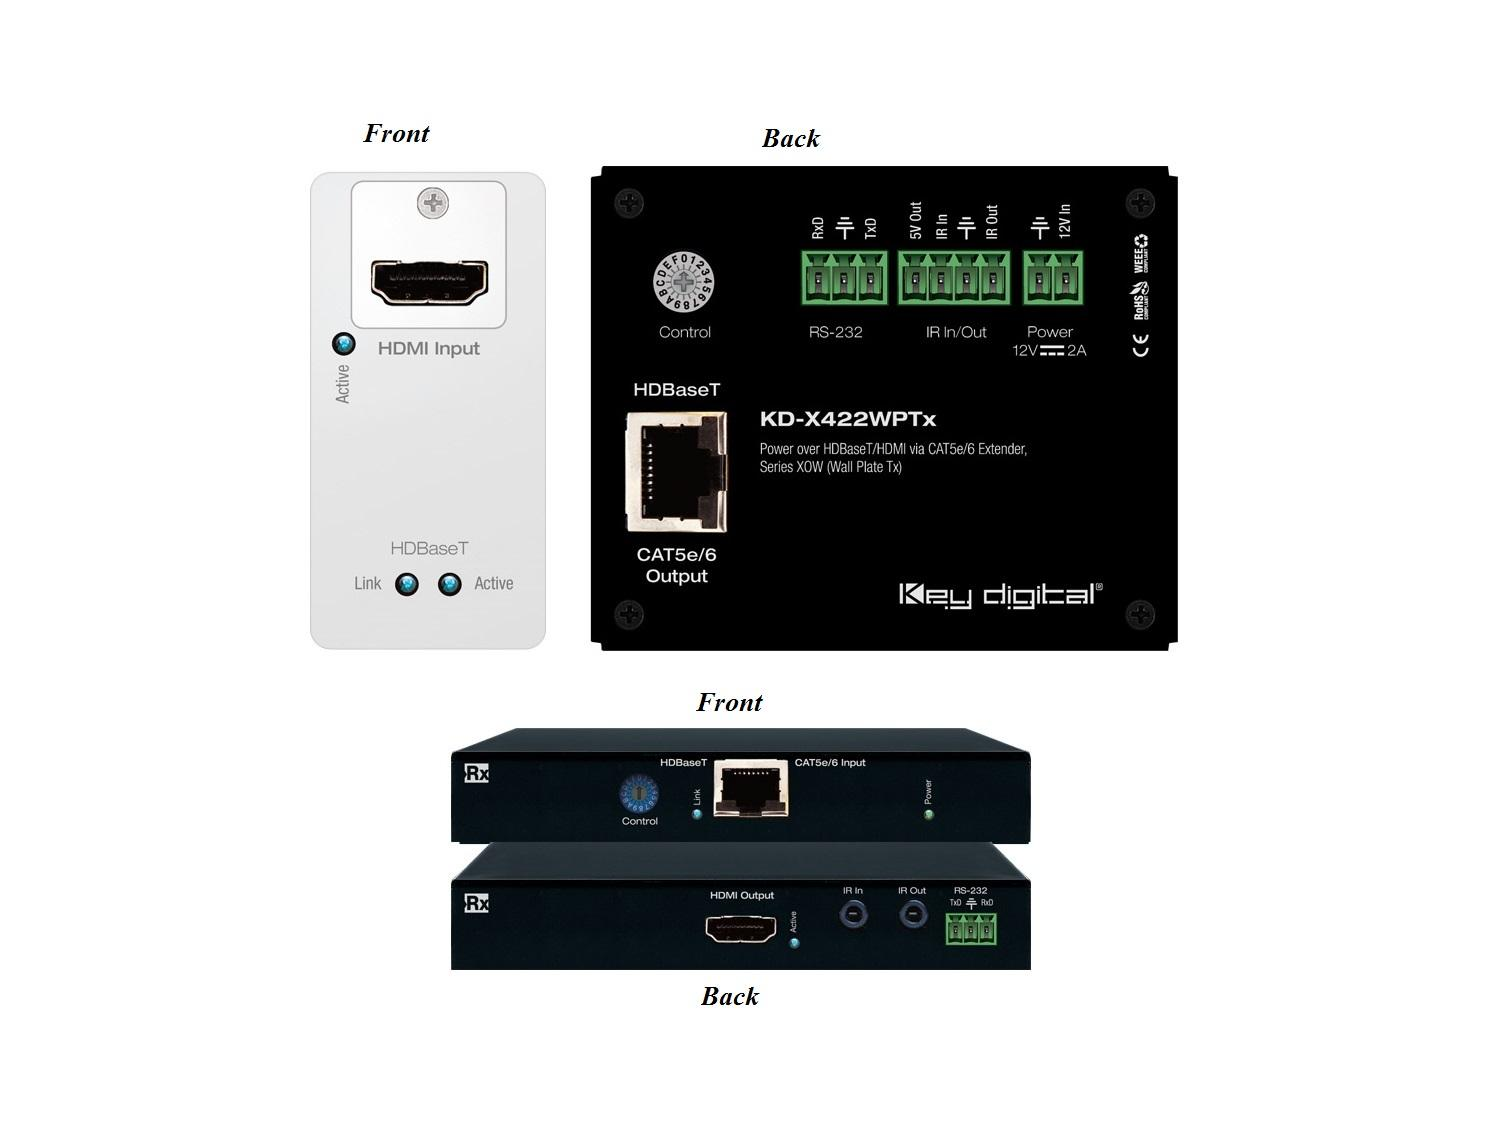 KD-X422WP Power over HDMI via Single CAT5e/6 (Wall Plate Transmitter/Receiver Set) Extender HDR10/HDCP2.2/4K by Key Digital